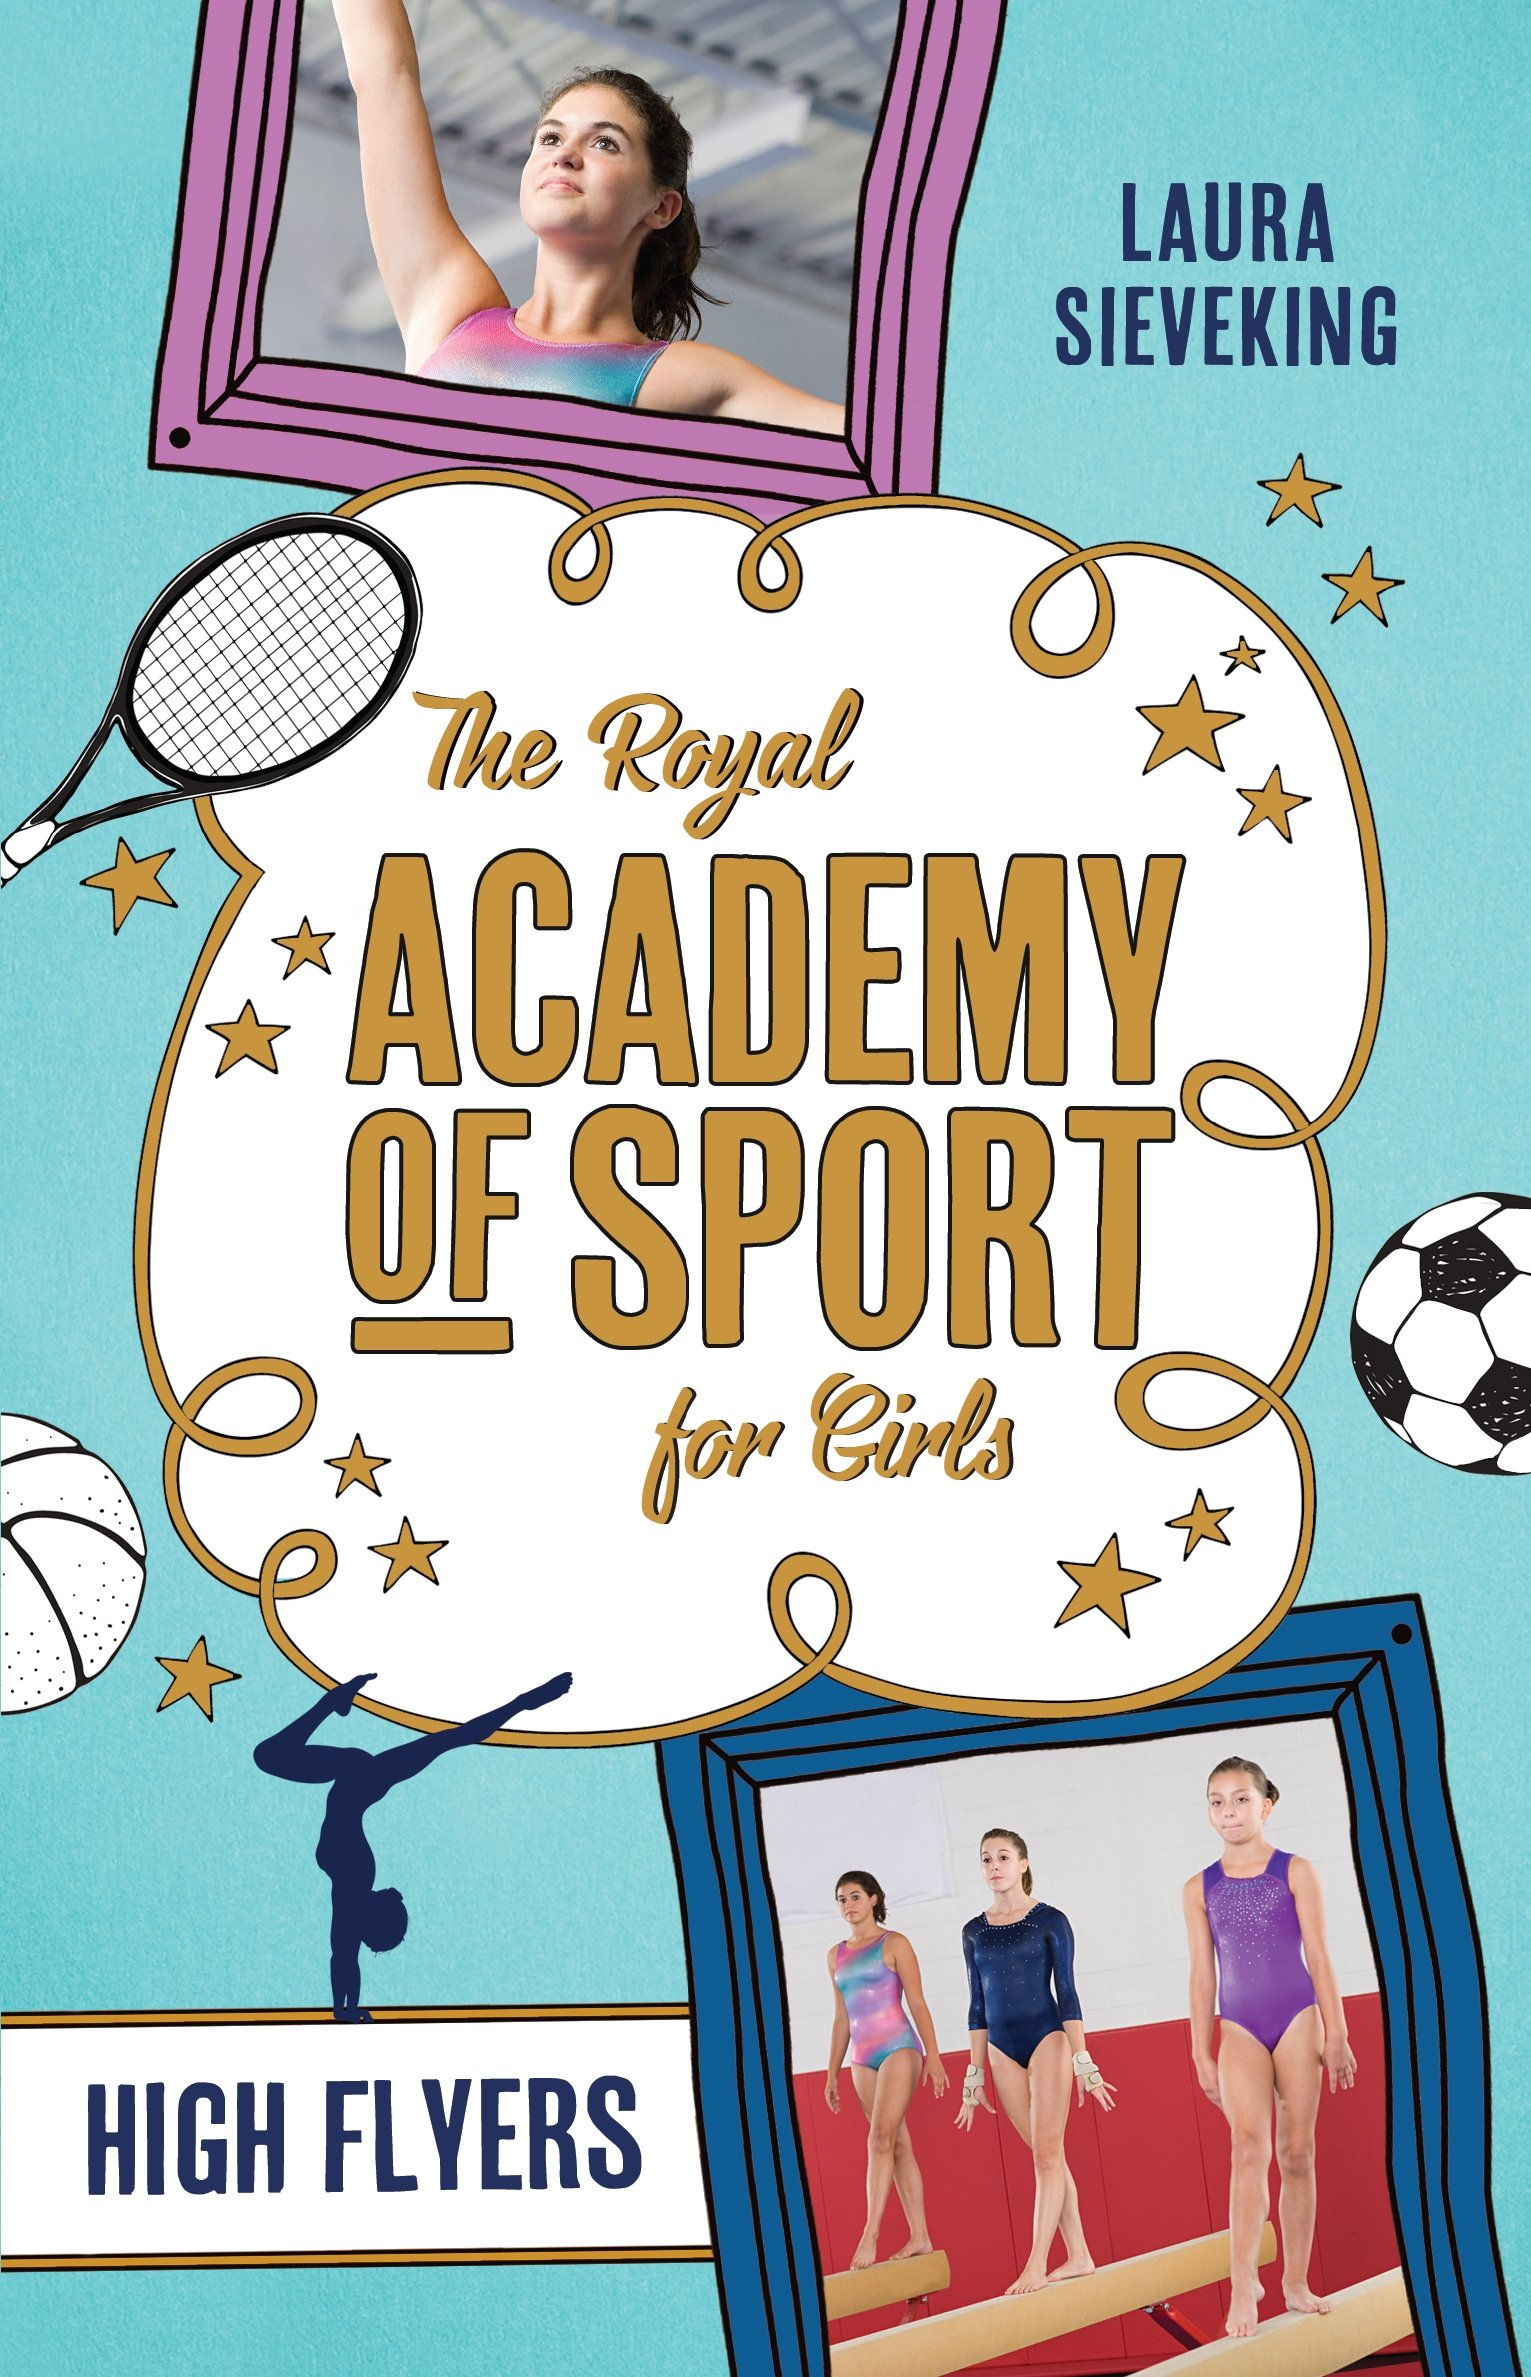 High Flyers (The Royal Academy of Sport for Girls)